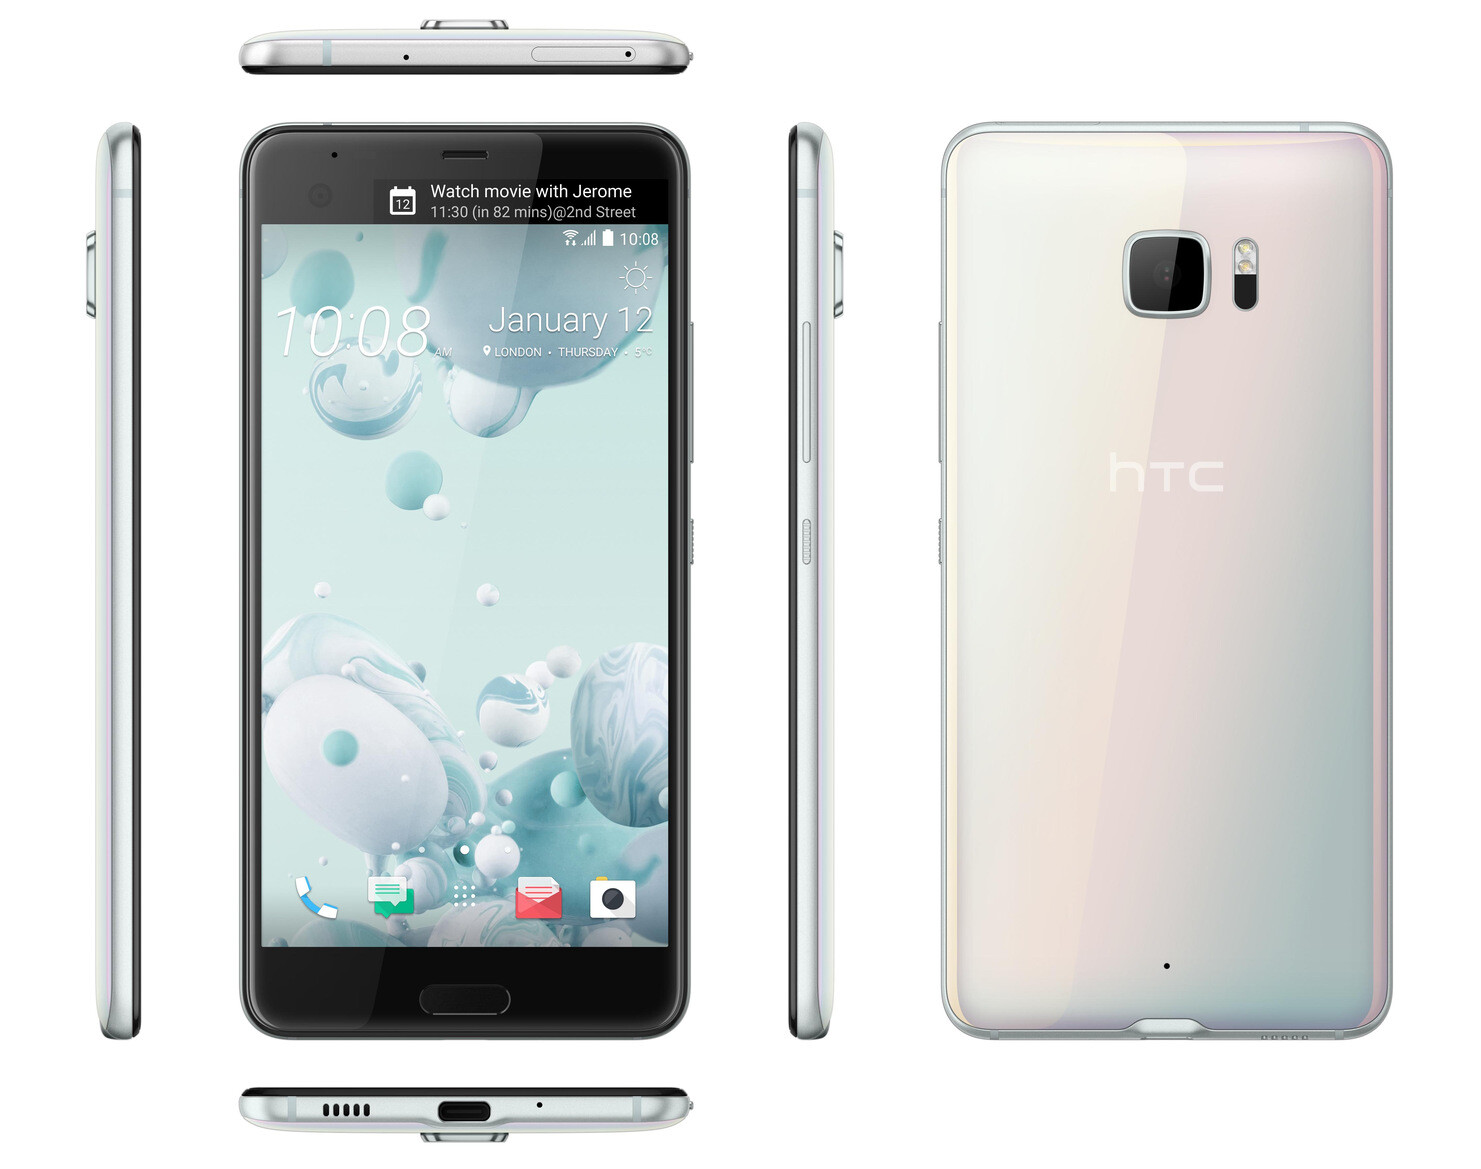 htc u ultra vs htc u play differences and common specs and features. Black Bedroom Furniture Sets. Home Design Ideas